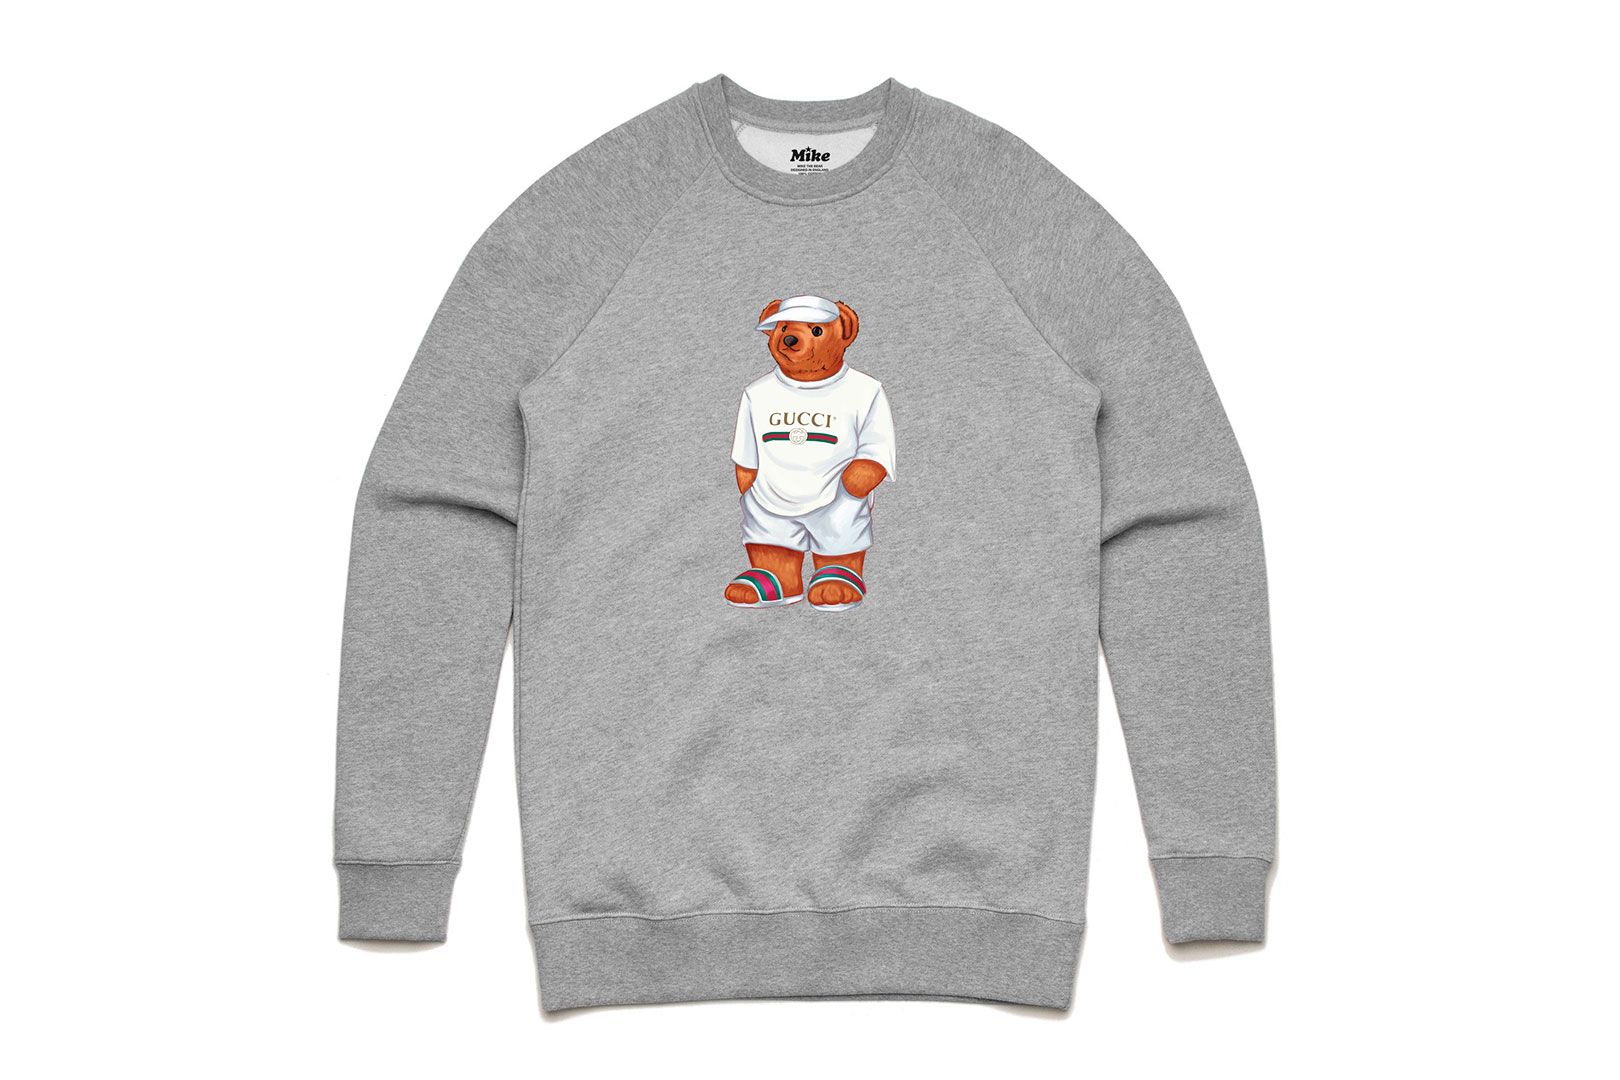 Mike the Bear trägt Gucci, Louis Vuitton und Supreme